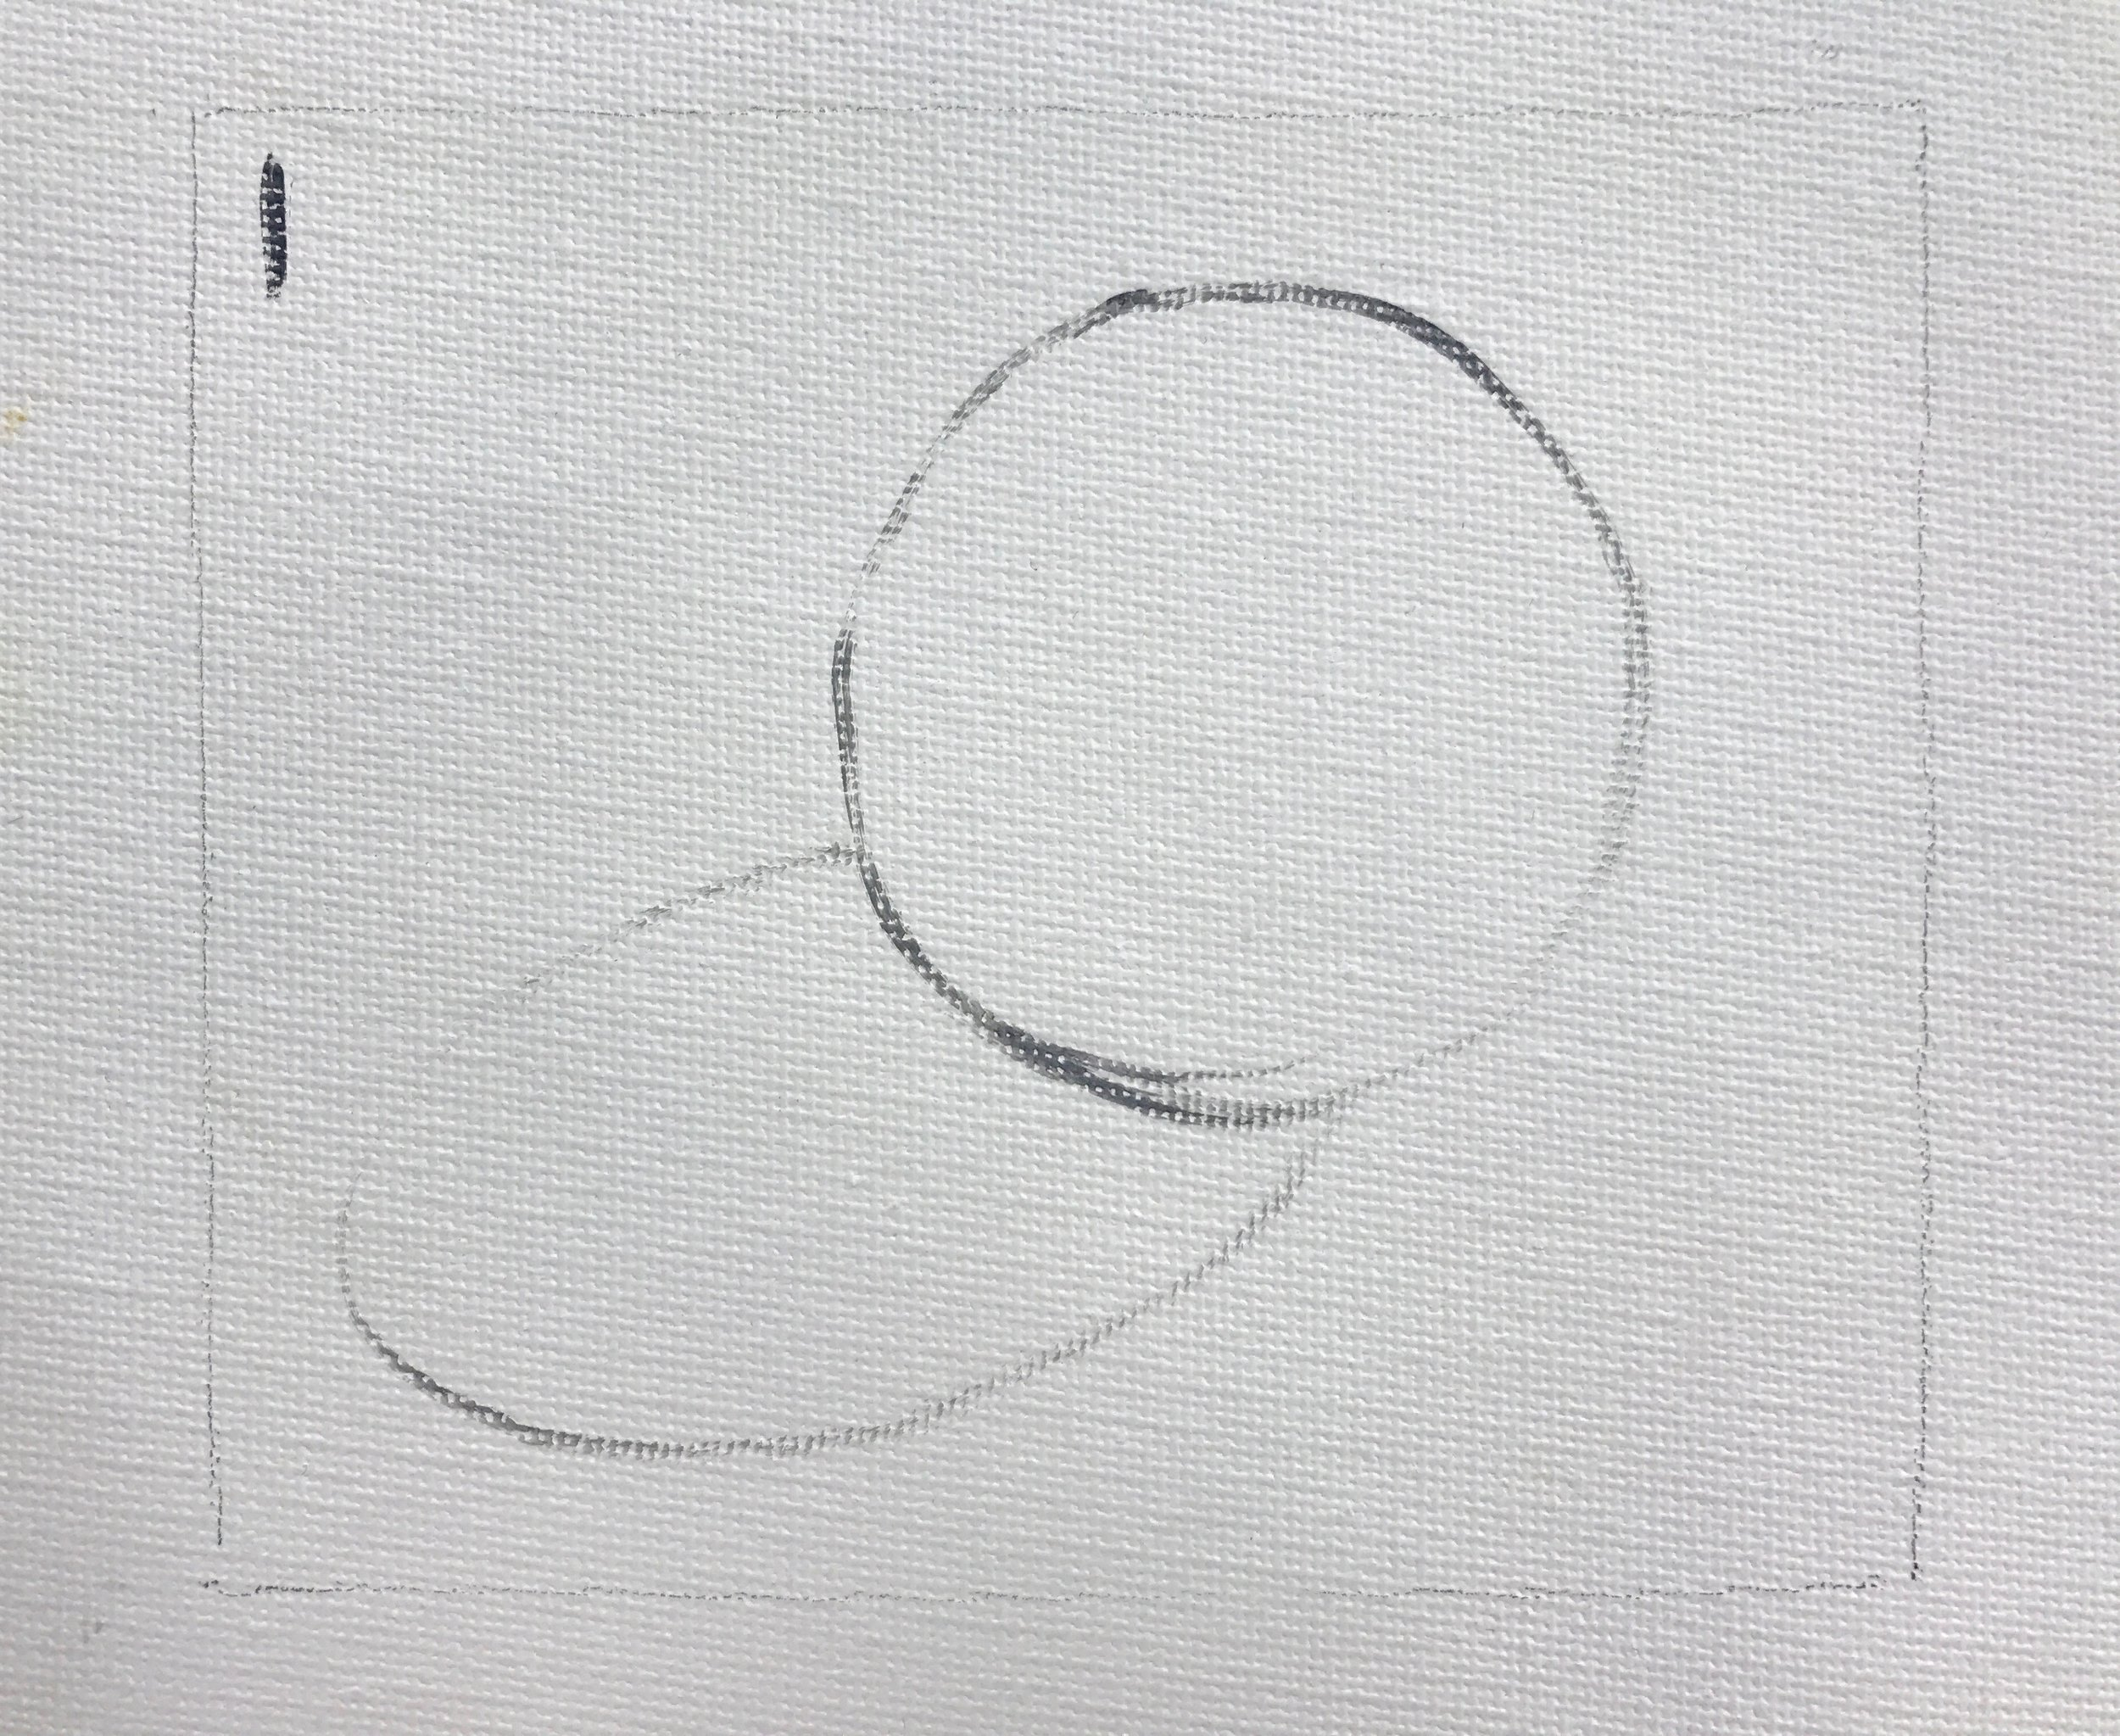 Draw sphere and cast shadow with paint.